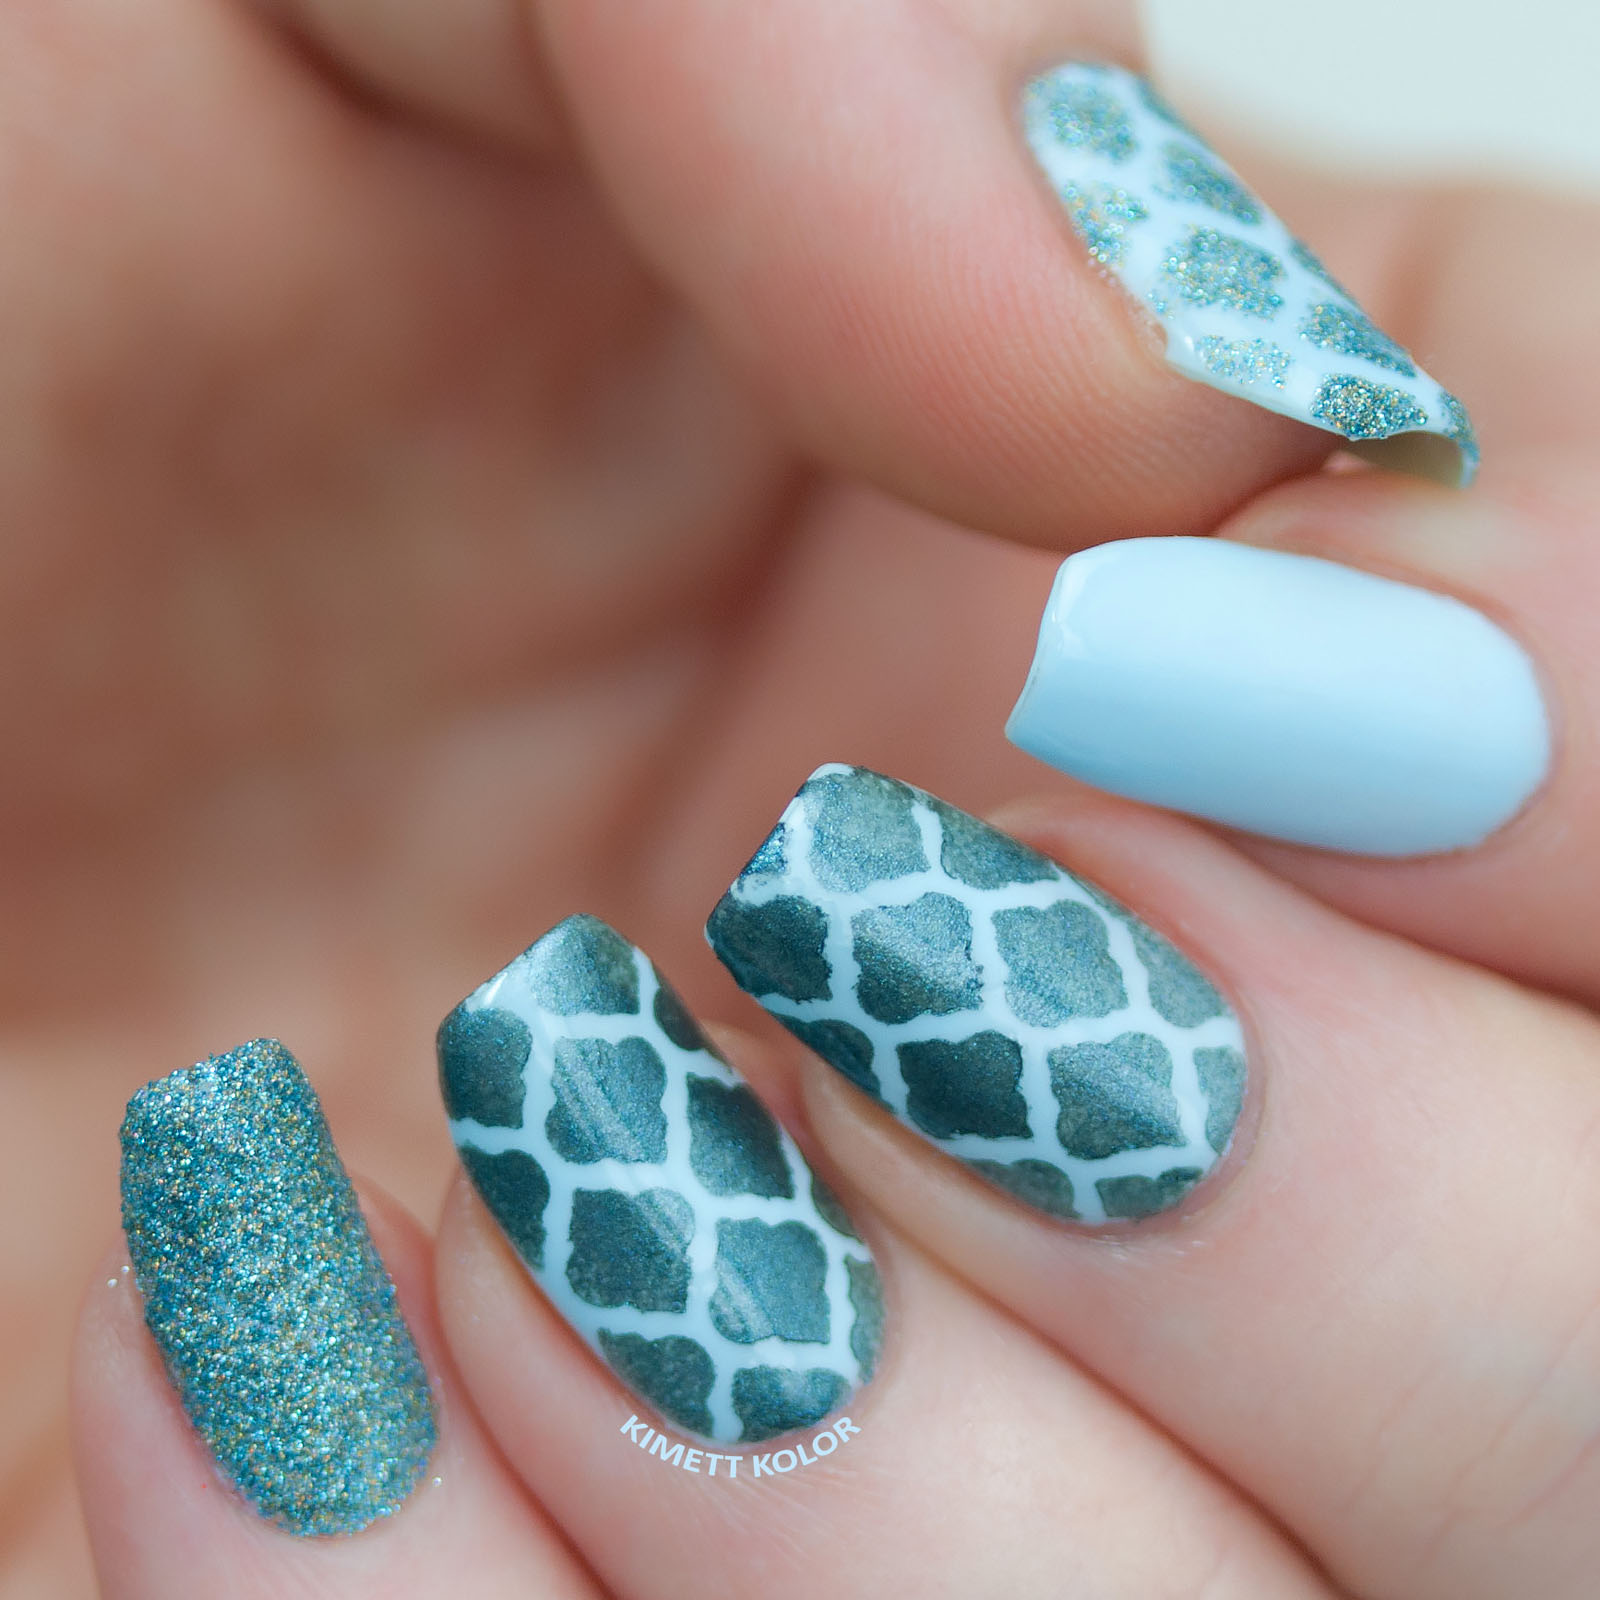 Kimett Kolor fresh blues in a moroccan inspired nail skittlette